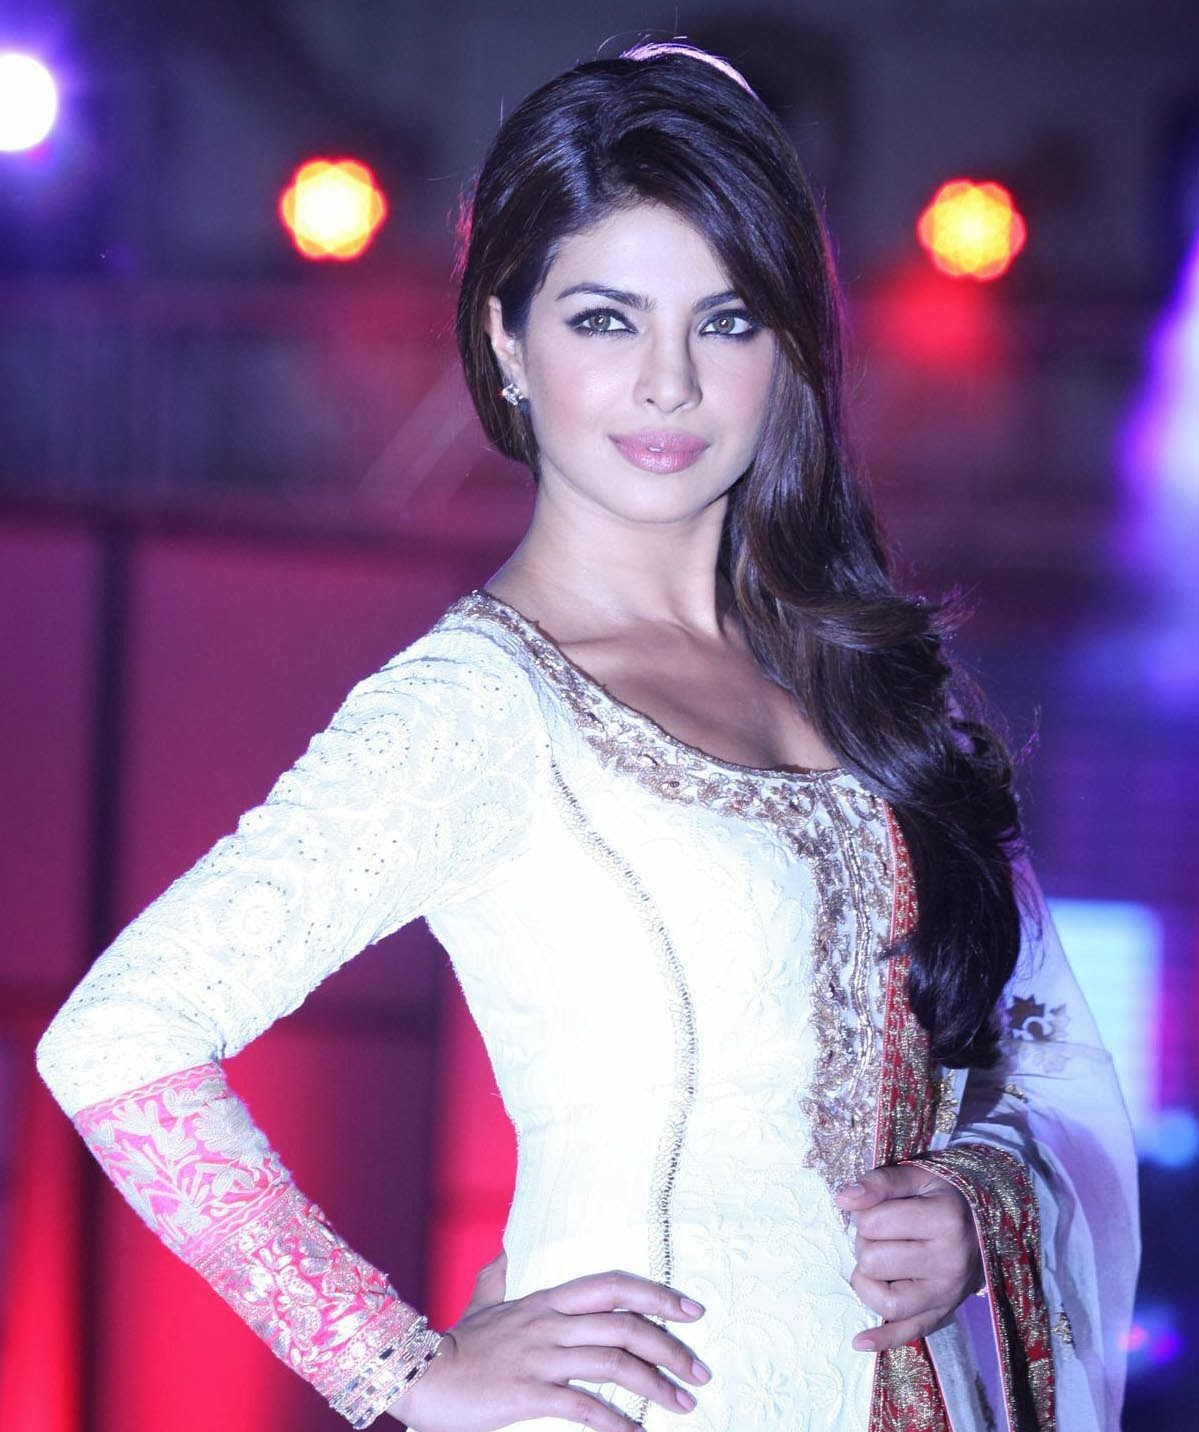 ... : HD Wallpapers and Images of Hot Bollywood actress Priyanka Chopra